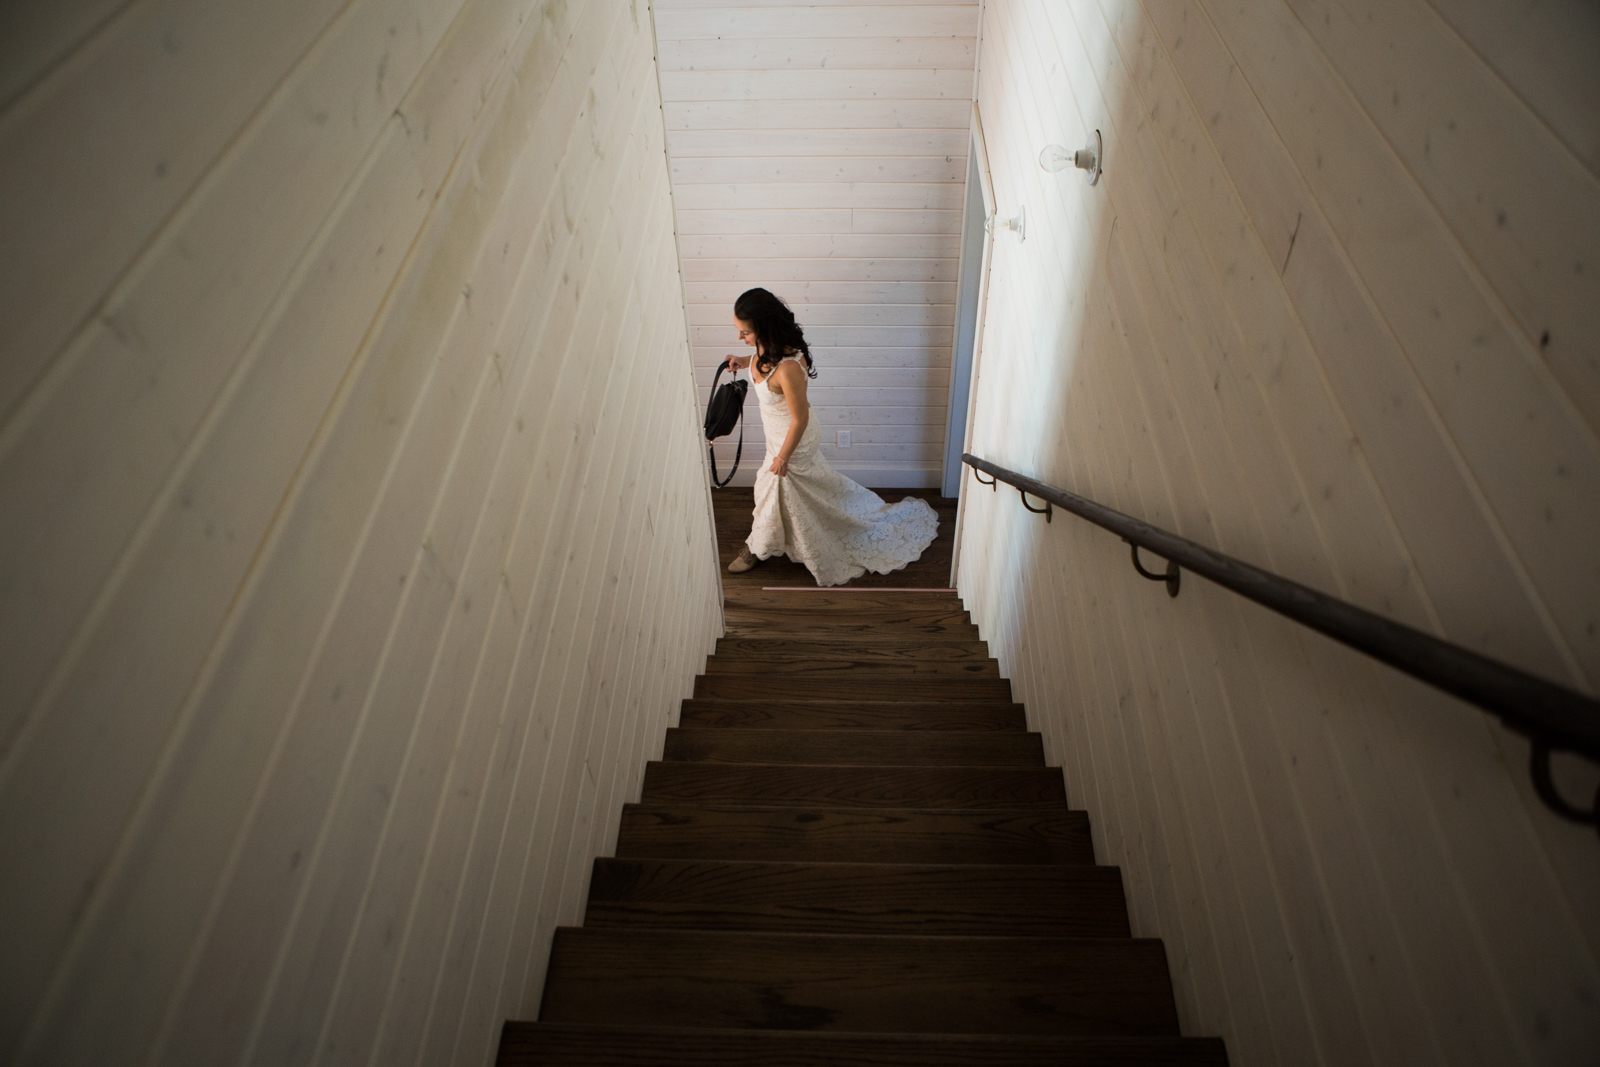 28Andrew_Pavlidis_Photography_Jess_and_Tristan_Revelstoke_Elopement_Calgary_Wedding_Photographer-7687